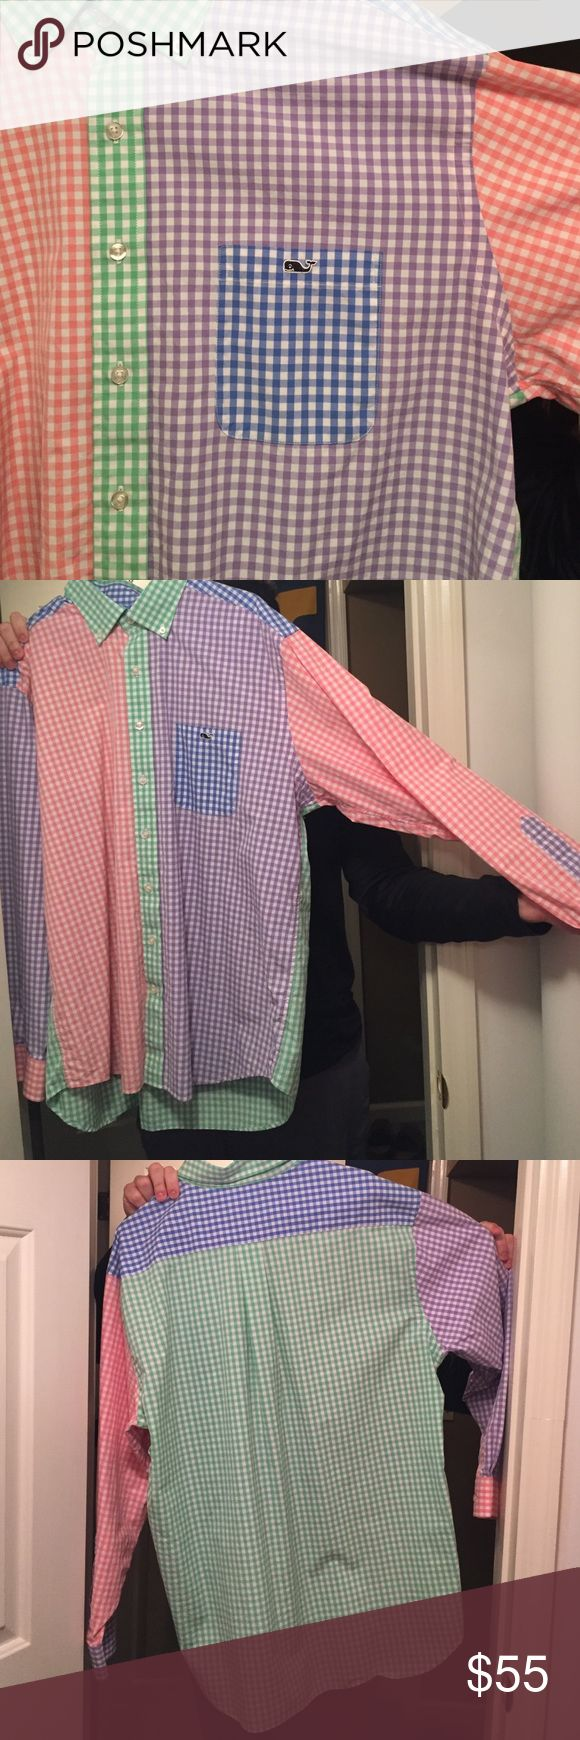 NEW Vineyard Vine Tucker button down shirt Brand new never been worn vineyard vines button down! Size XL! PERFECT Condition. Does not have tags on it, but it has never been worn. Boyfriend bought it and it's too big for him. Bought from vineyard vines store. Really cool spring colors in it! Price negotiable. Vineyard Vines Shirts Casual Button Down Shirts